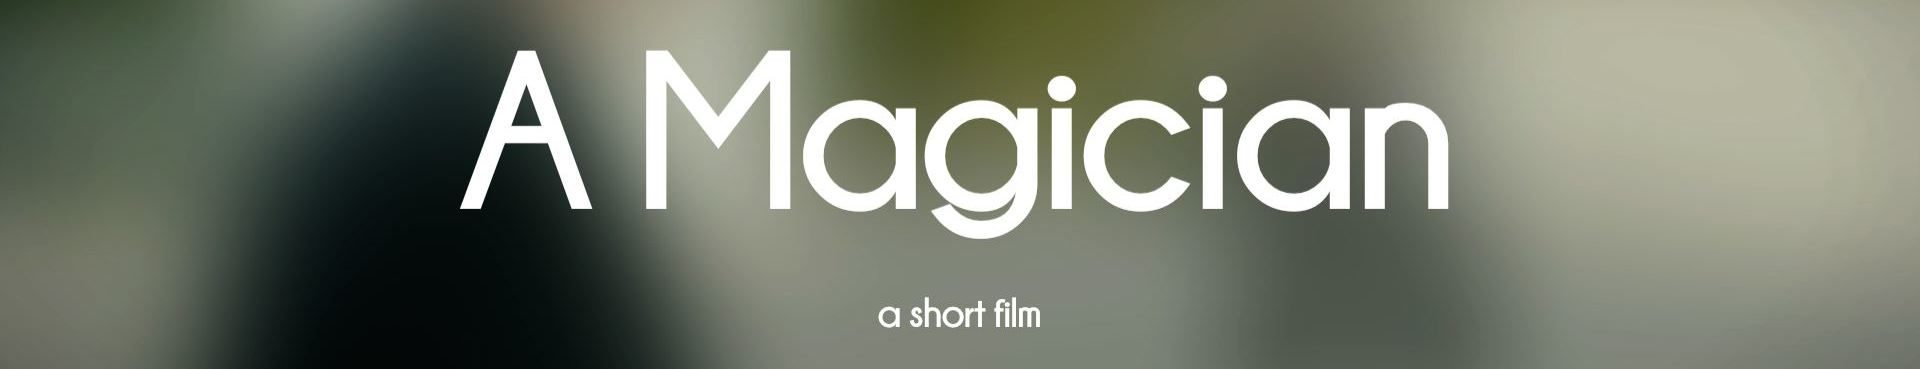 A Magician Header Image For New Planet Website